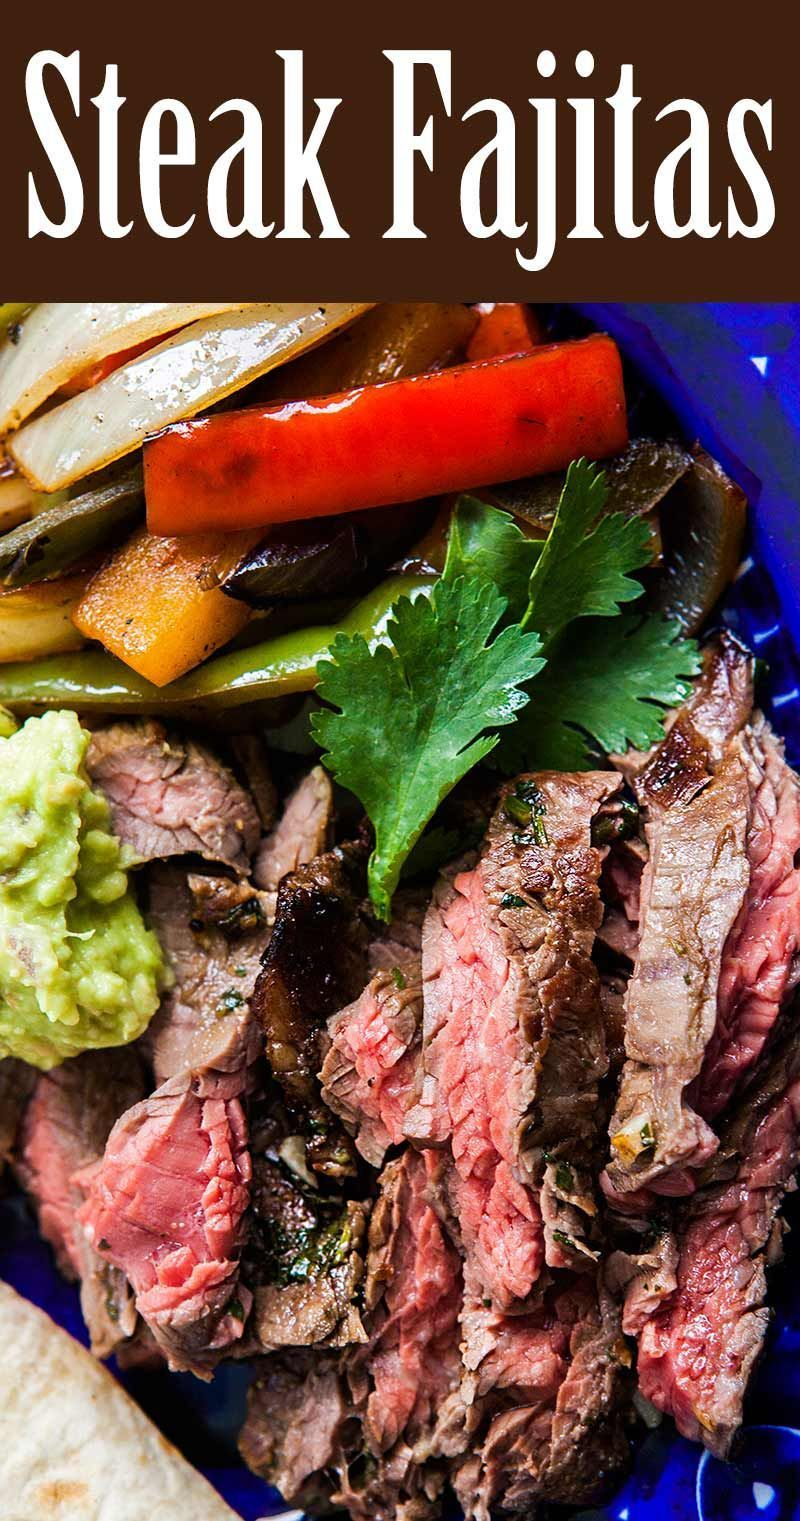 Beef Steak Fajitas #steakfajitarecipe Steak Fajitas! Classic Tex Mex fajitas recipe, made with strips of skirt steak, onions and bell peppers, and served sizzling hot with fresh tortillas, guacamole, sour cream, and salsa. On SimplyRecipes.com #dinner #1-pot #texmex #fajitas #steakfajitarecipe Beef Steak Fajitas #steakfajitarecipe Steak Fajitas! Classic Tex Mex fajitas recipe, made with strips of skirt steak, onions and bell peppers, and served sizzling hot with fresh tortillas, guacamole, sour #beeffajitarecipe